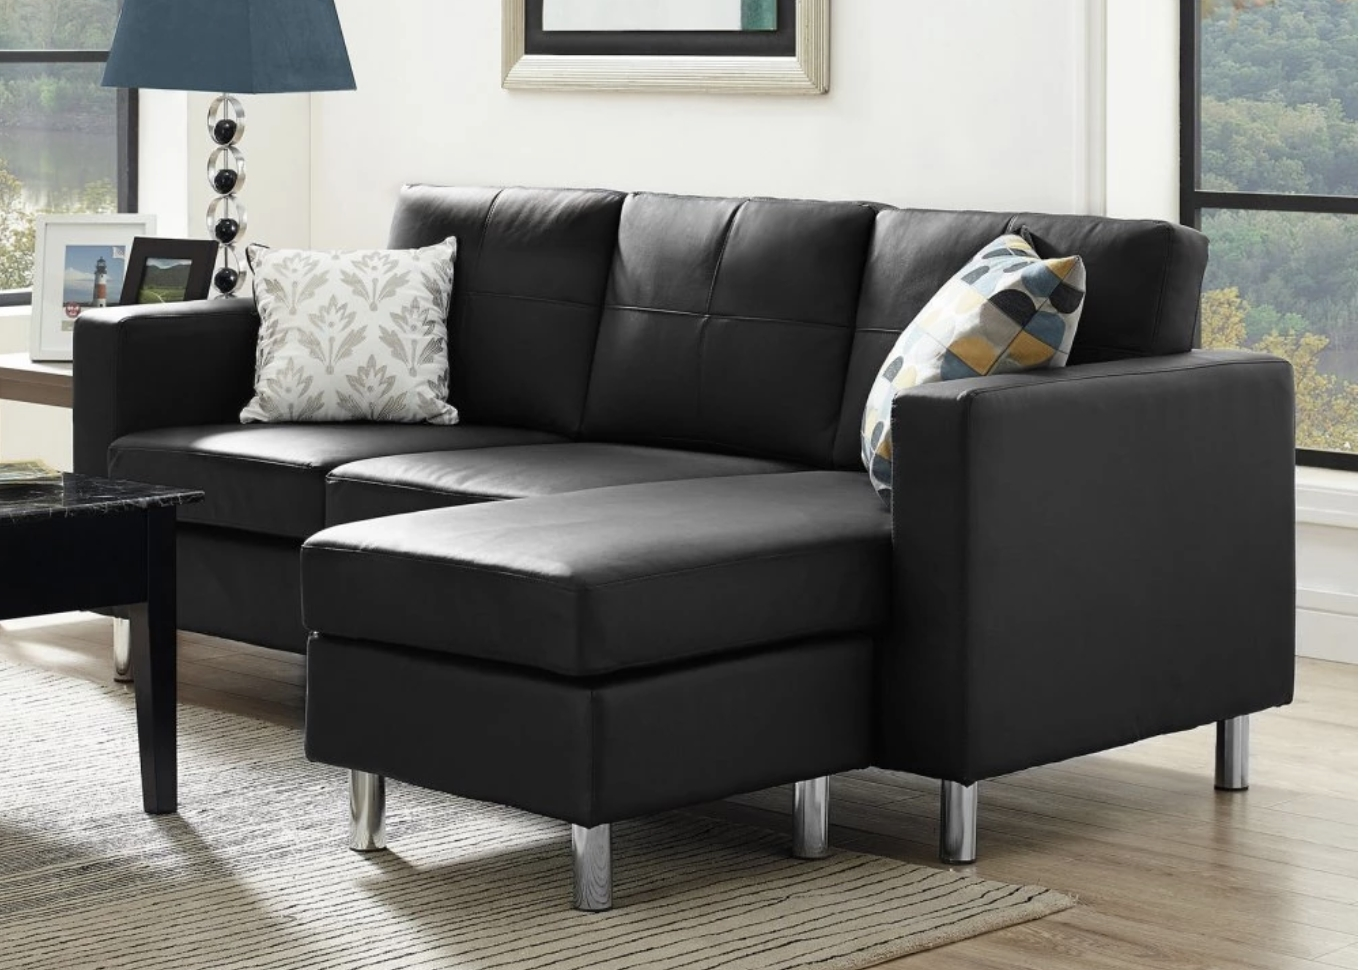 75 Modern Sectional Sofas For Small Spaces (2018) Intended For Latest Sectional Sofas In Small Spaces (View 2 of 15)